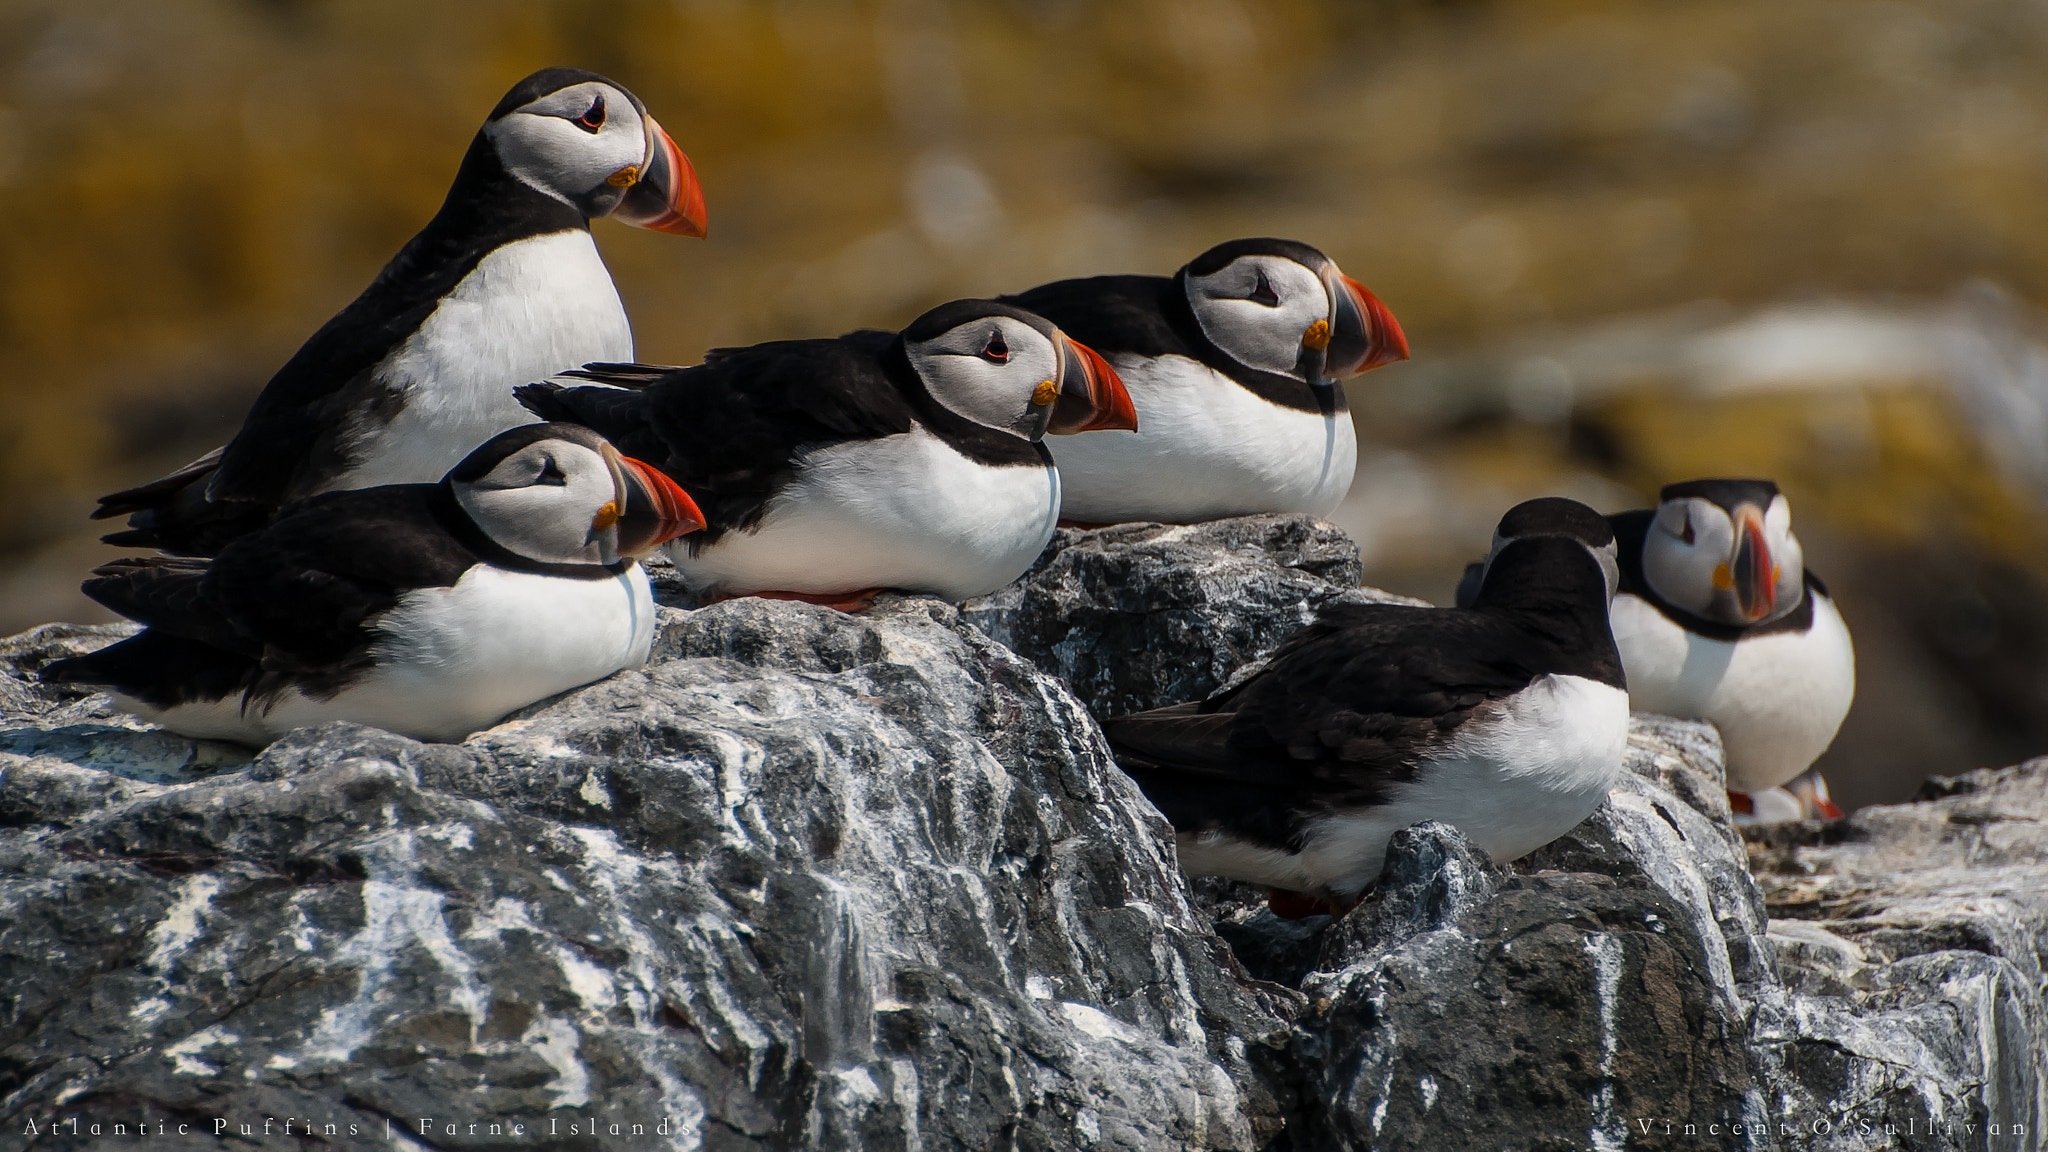 Photograph Atlantic Puffins, Farne Islands by Vince O'Sullivan on 500px